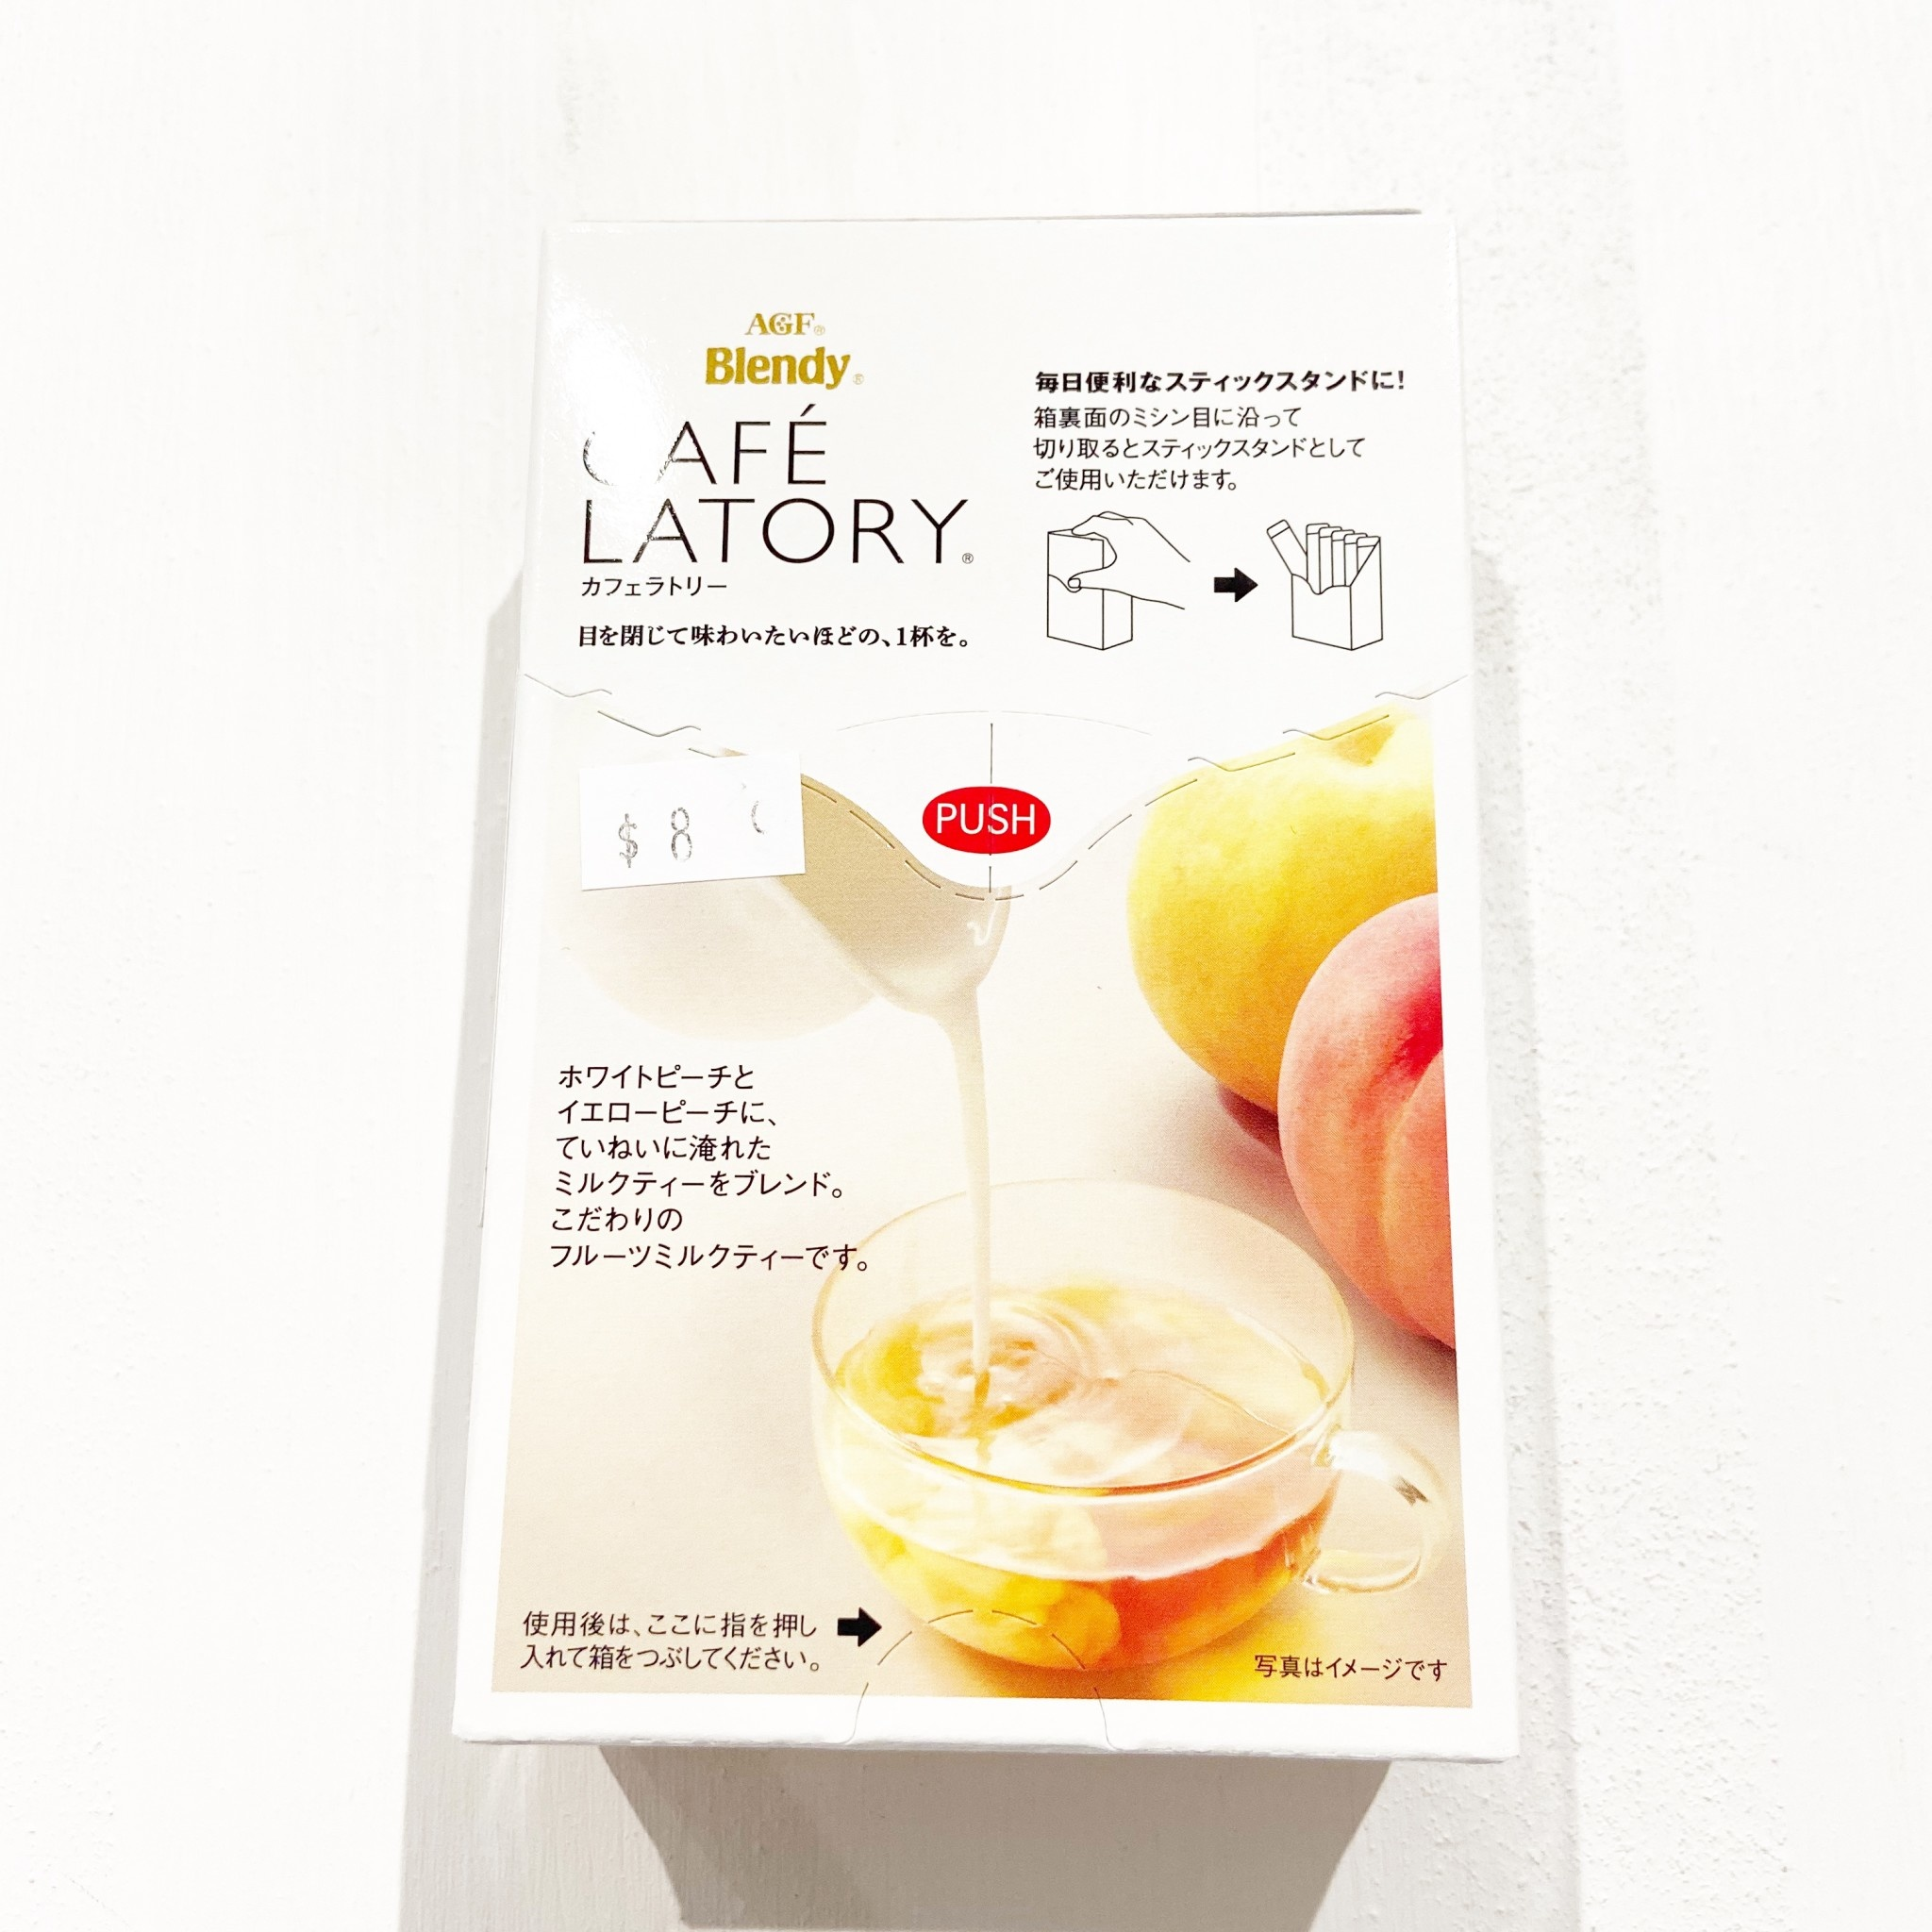 AGF Blendy Cafe Latory Milk Tea Peach Flavor